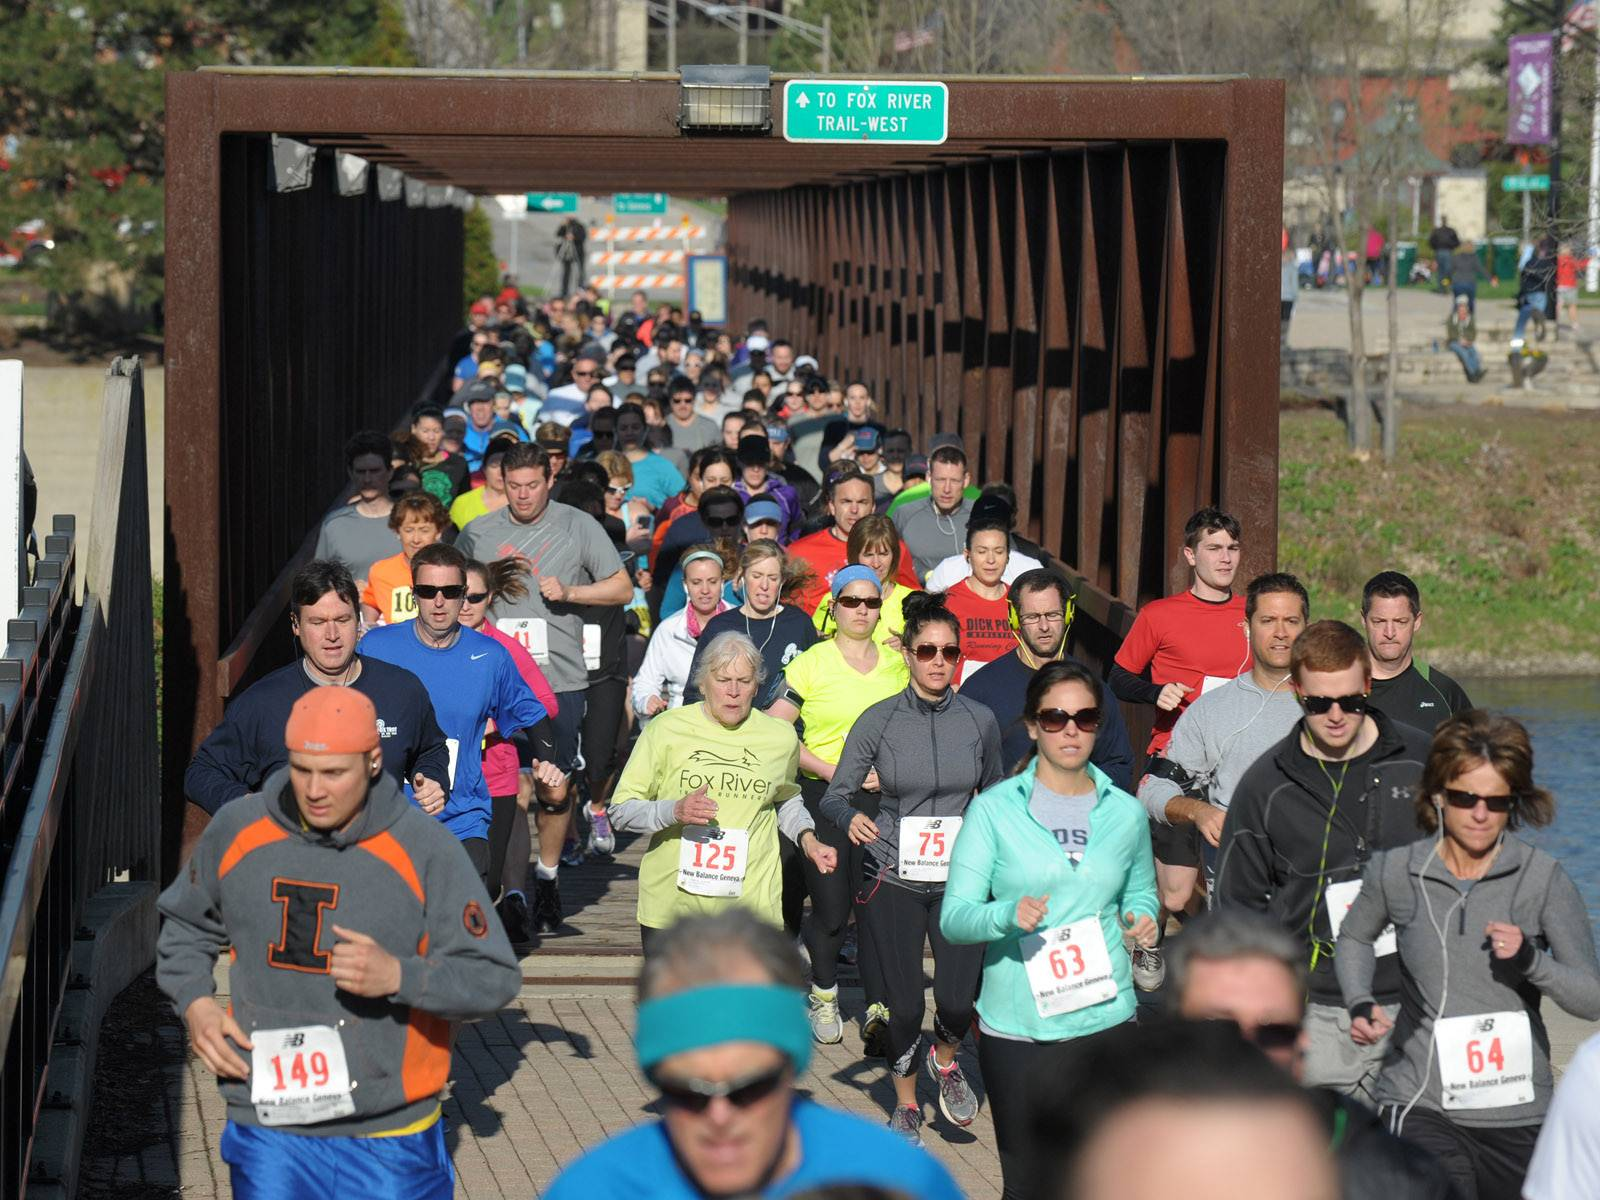 Runners take off across the Fox River on the pedestrian bridge for the Batavia Mothers' Club Foundation's 14th annual Fox Trot 5K/10K Saturday. This is the first year for the 10K.